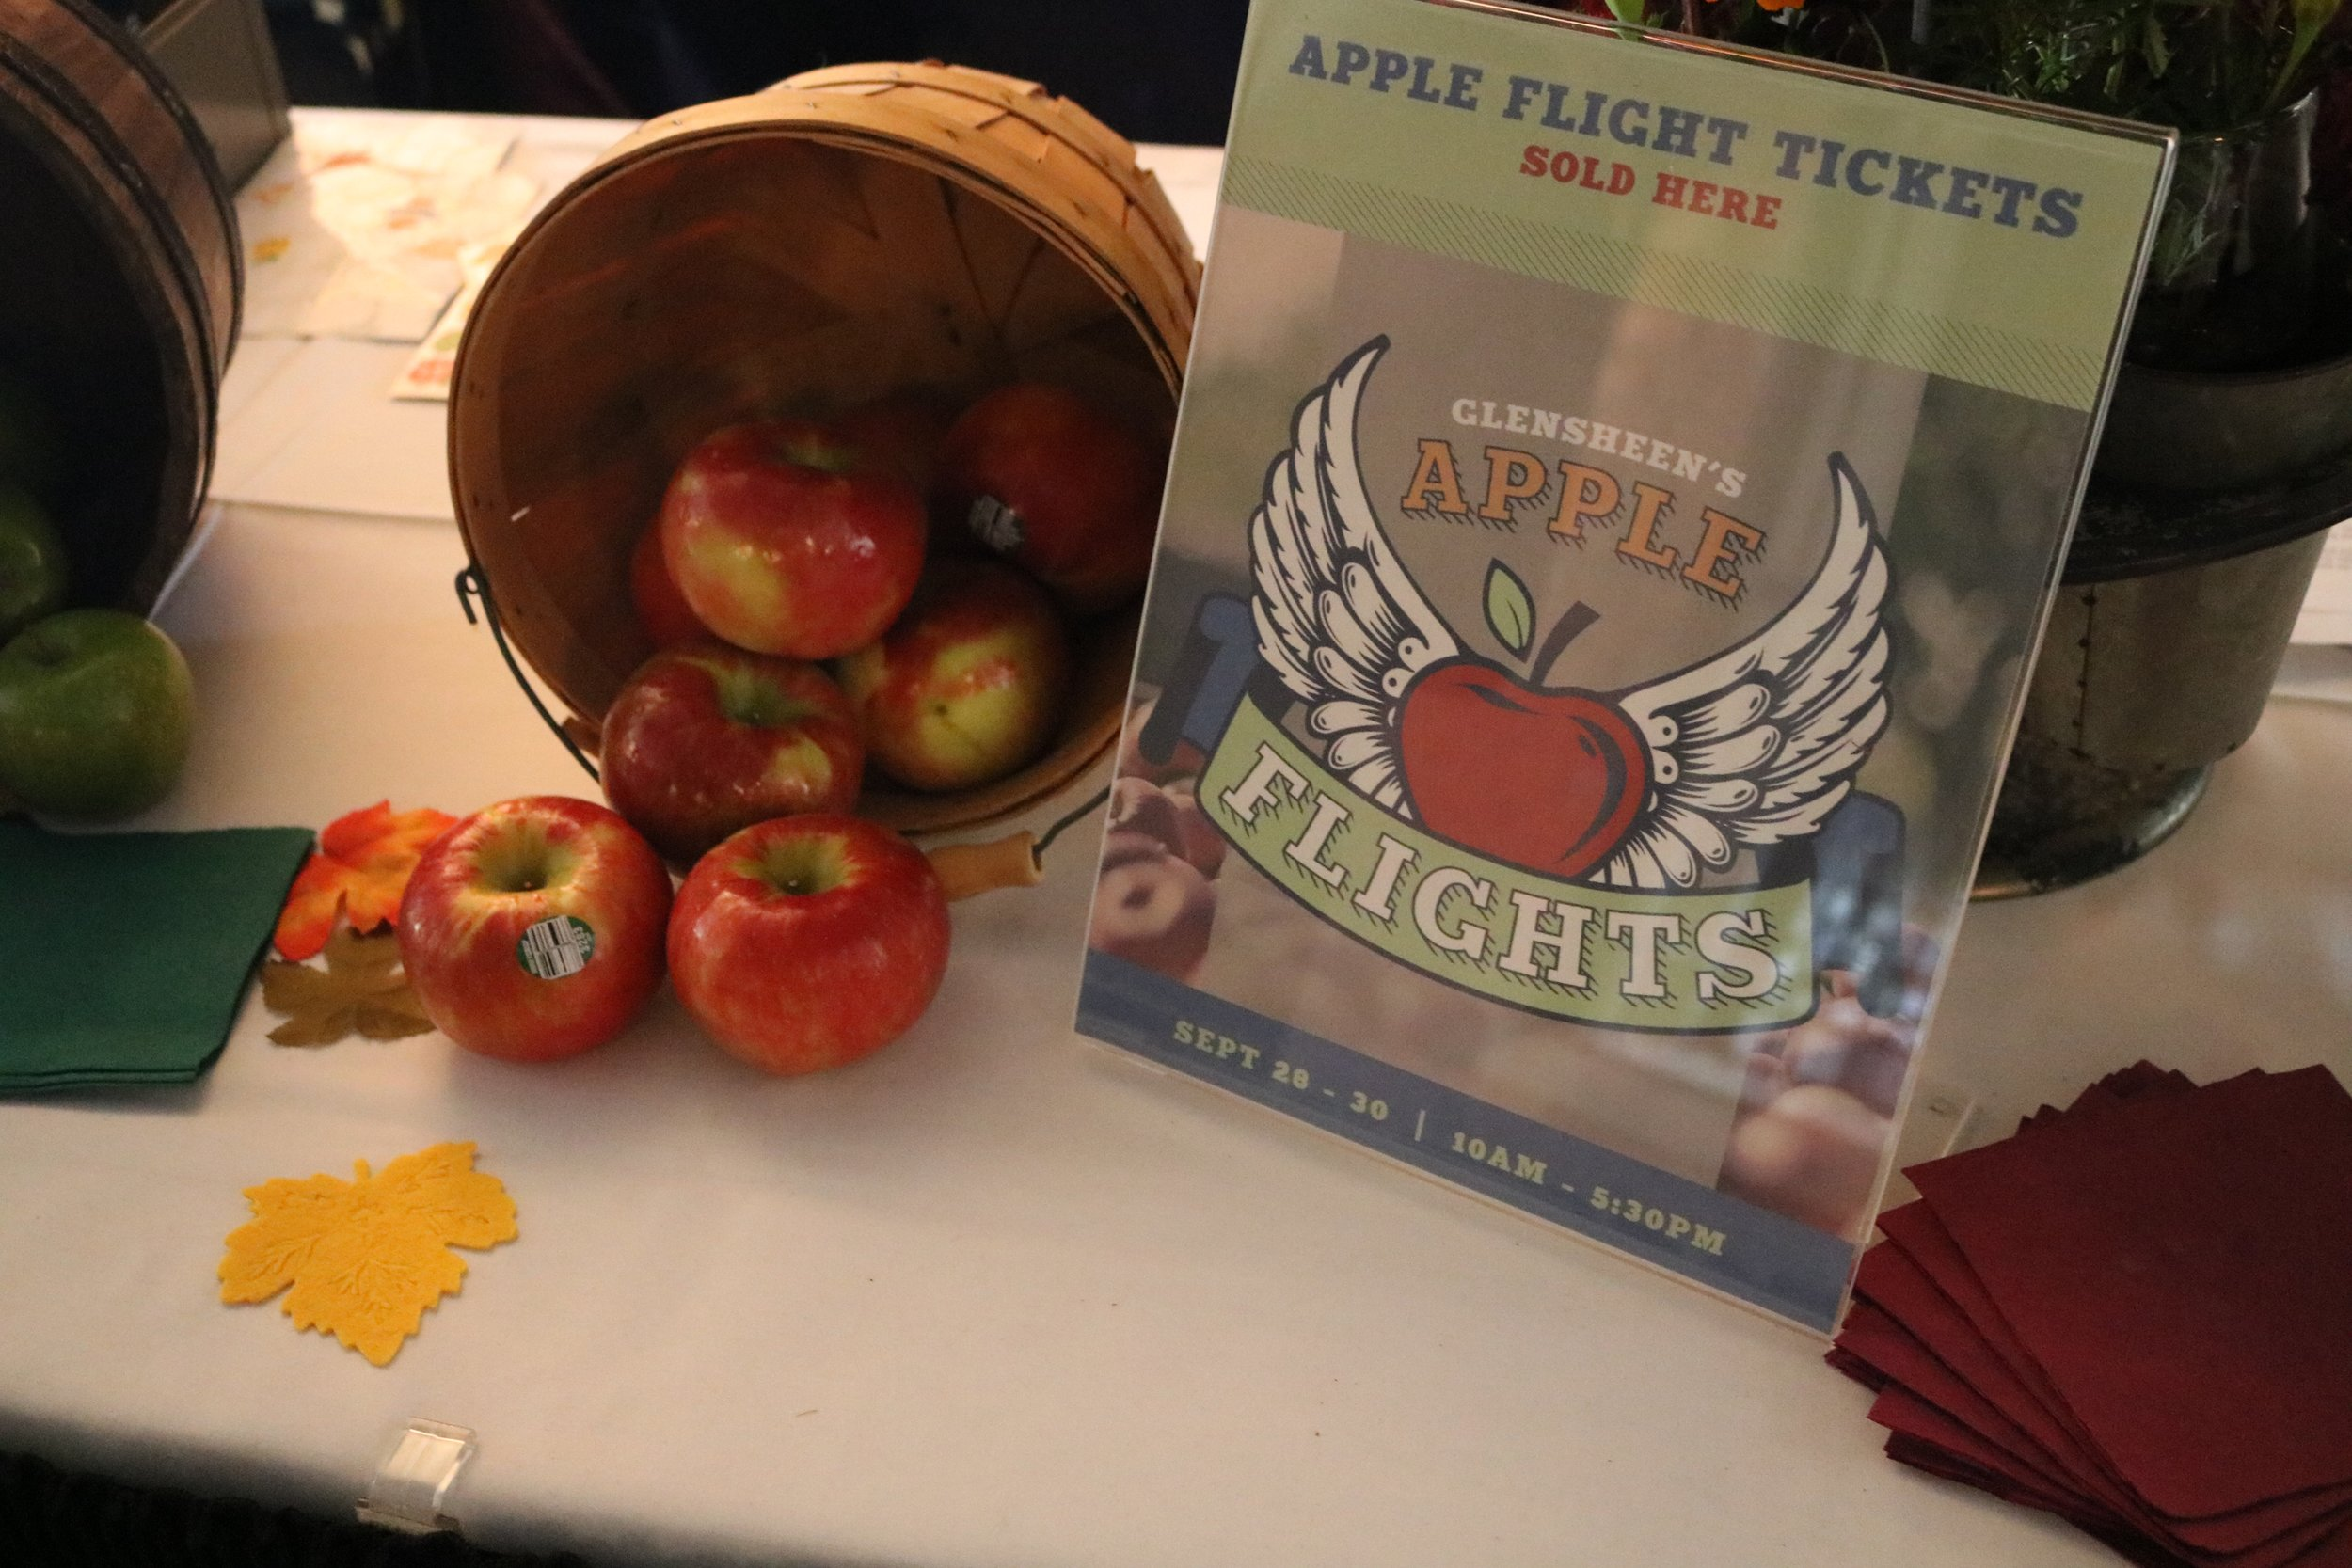 The apples used for 'Apple Flights' at Glensheen on Sept. 30, 2018. This is the first time Glensheen has done this event, but they are sure they will continue it in the future. Photo by Zack Benz